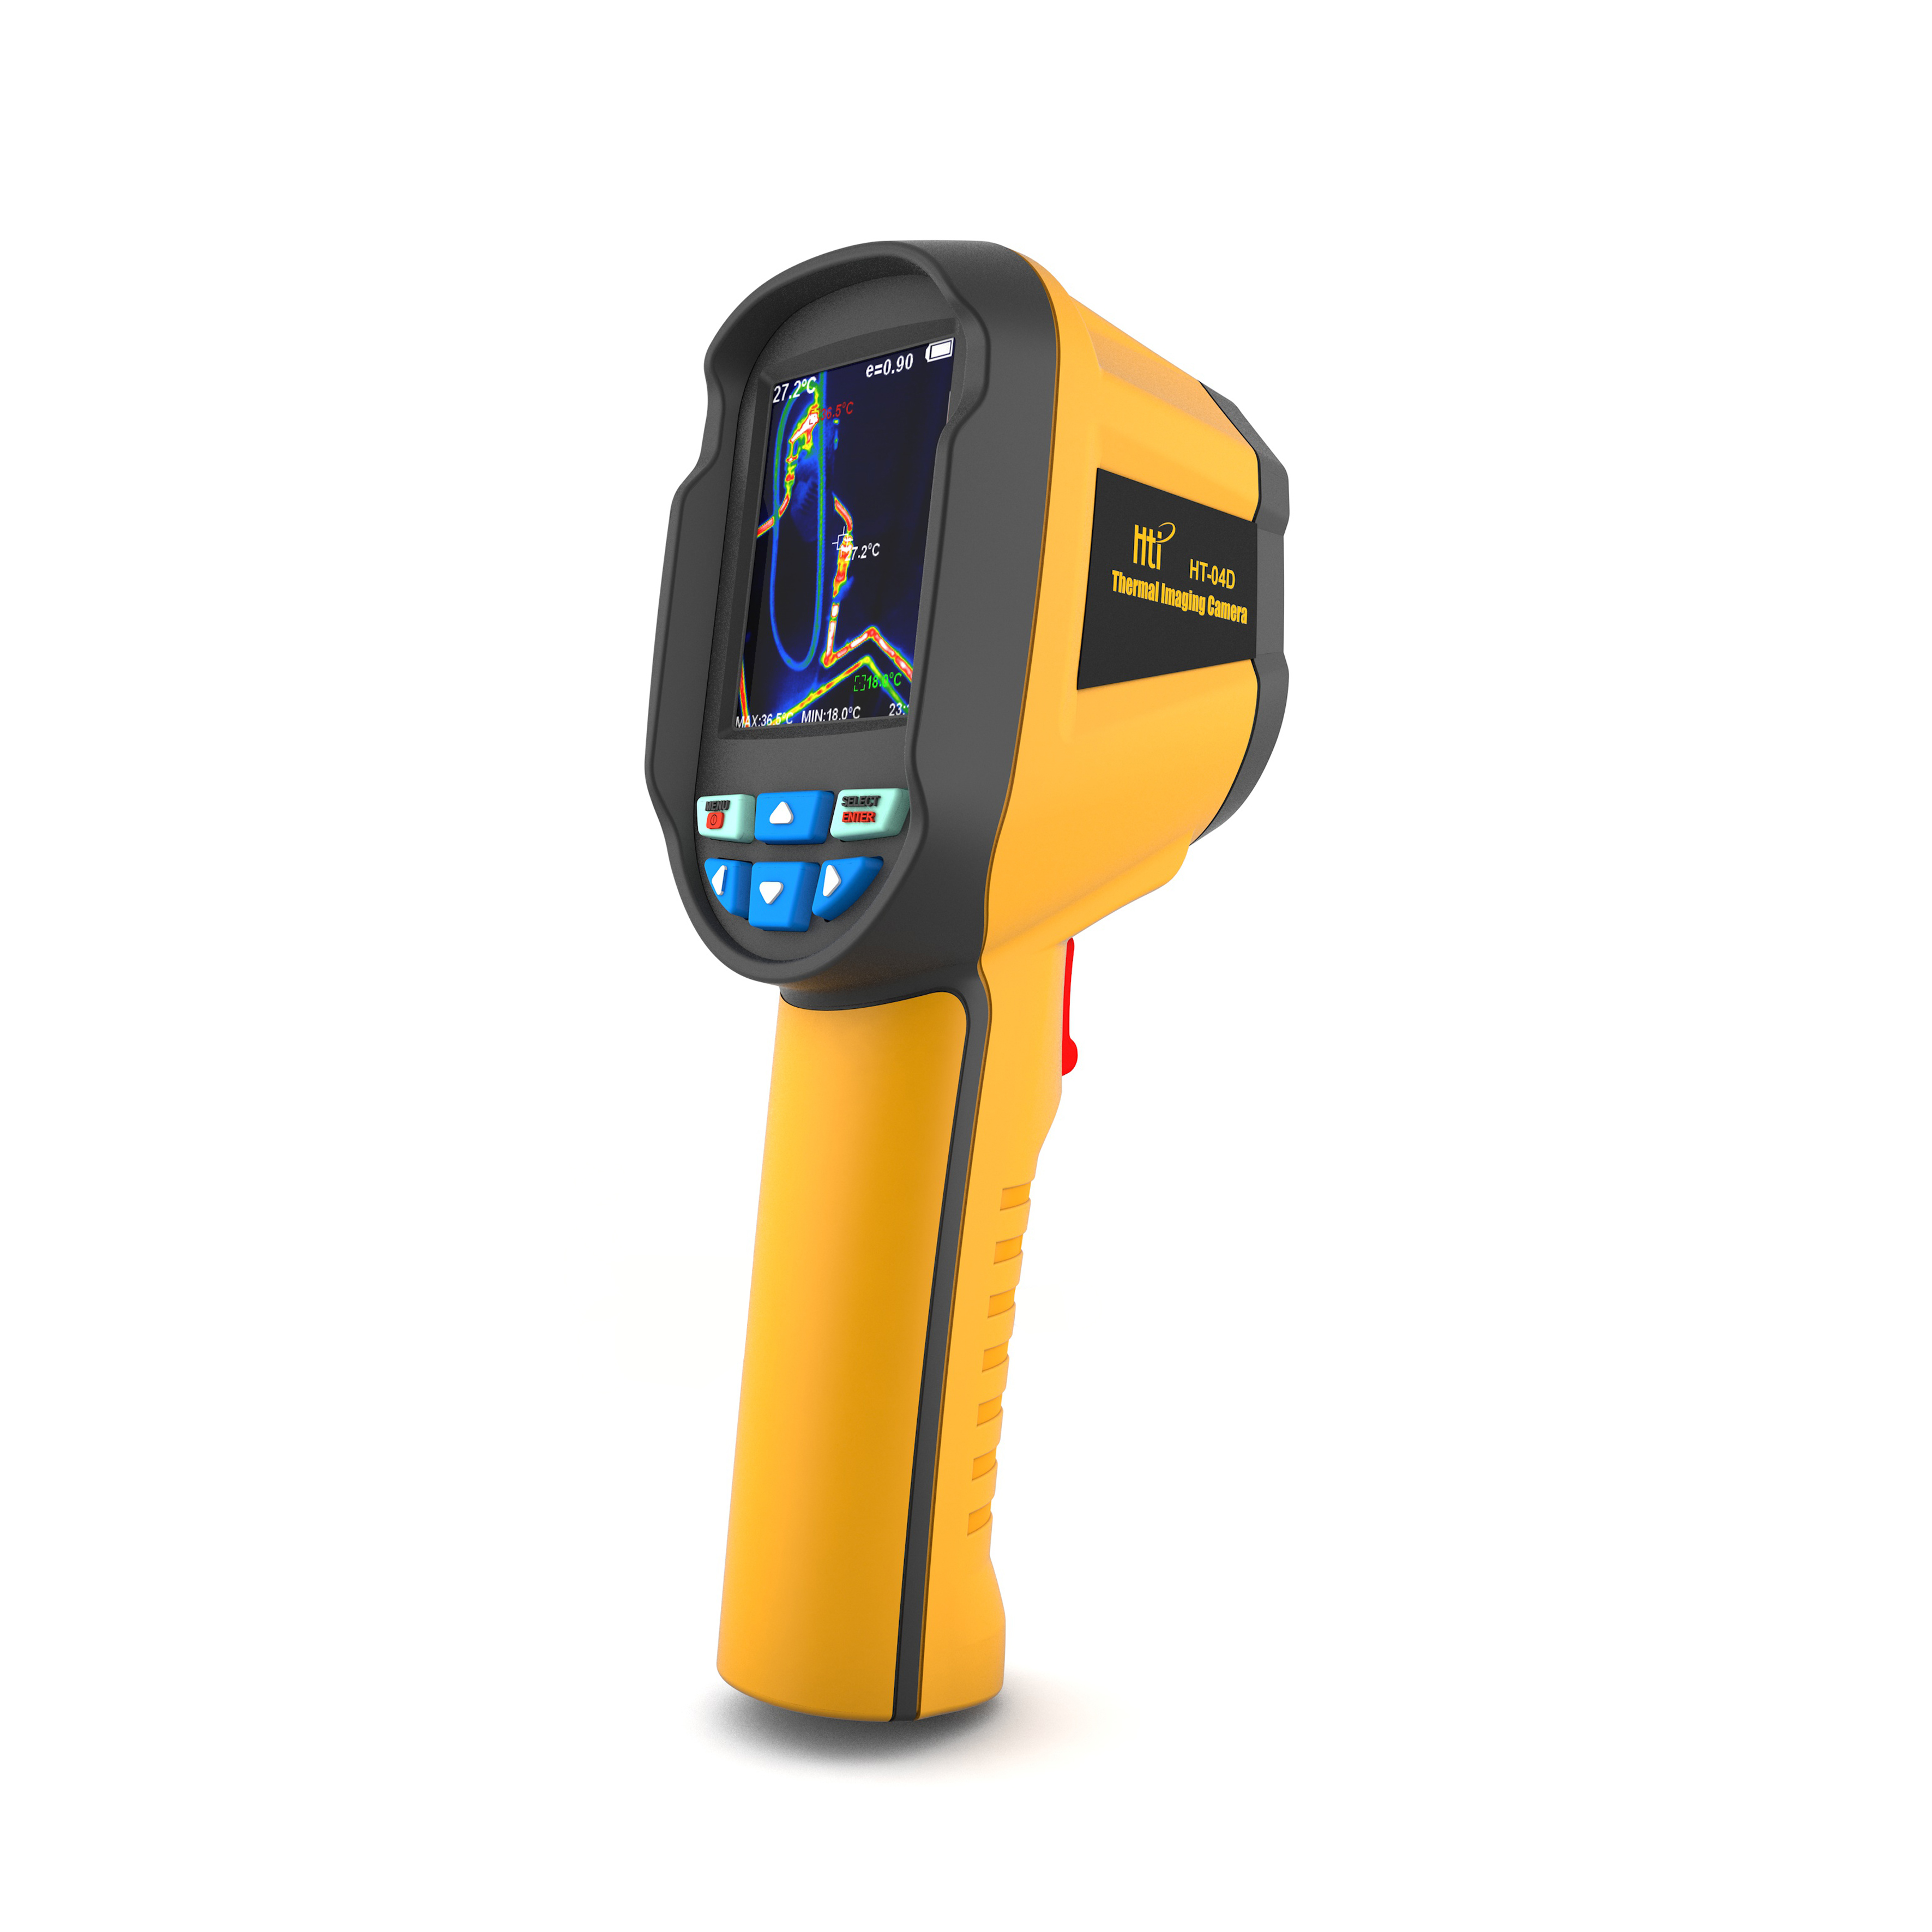 HT02 Digital Infrared Thermography Thermal Camera With 2-4 inch Color Lcd Display 2